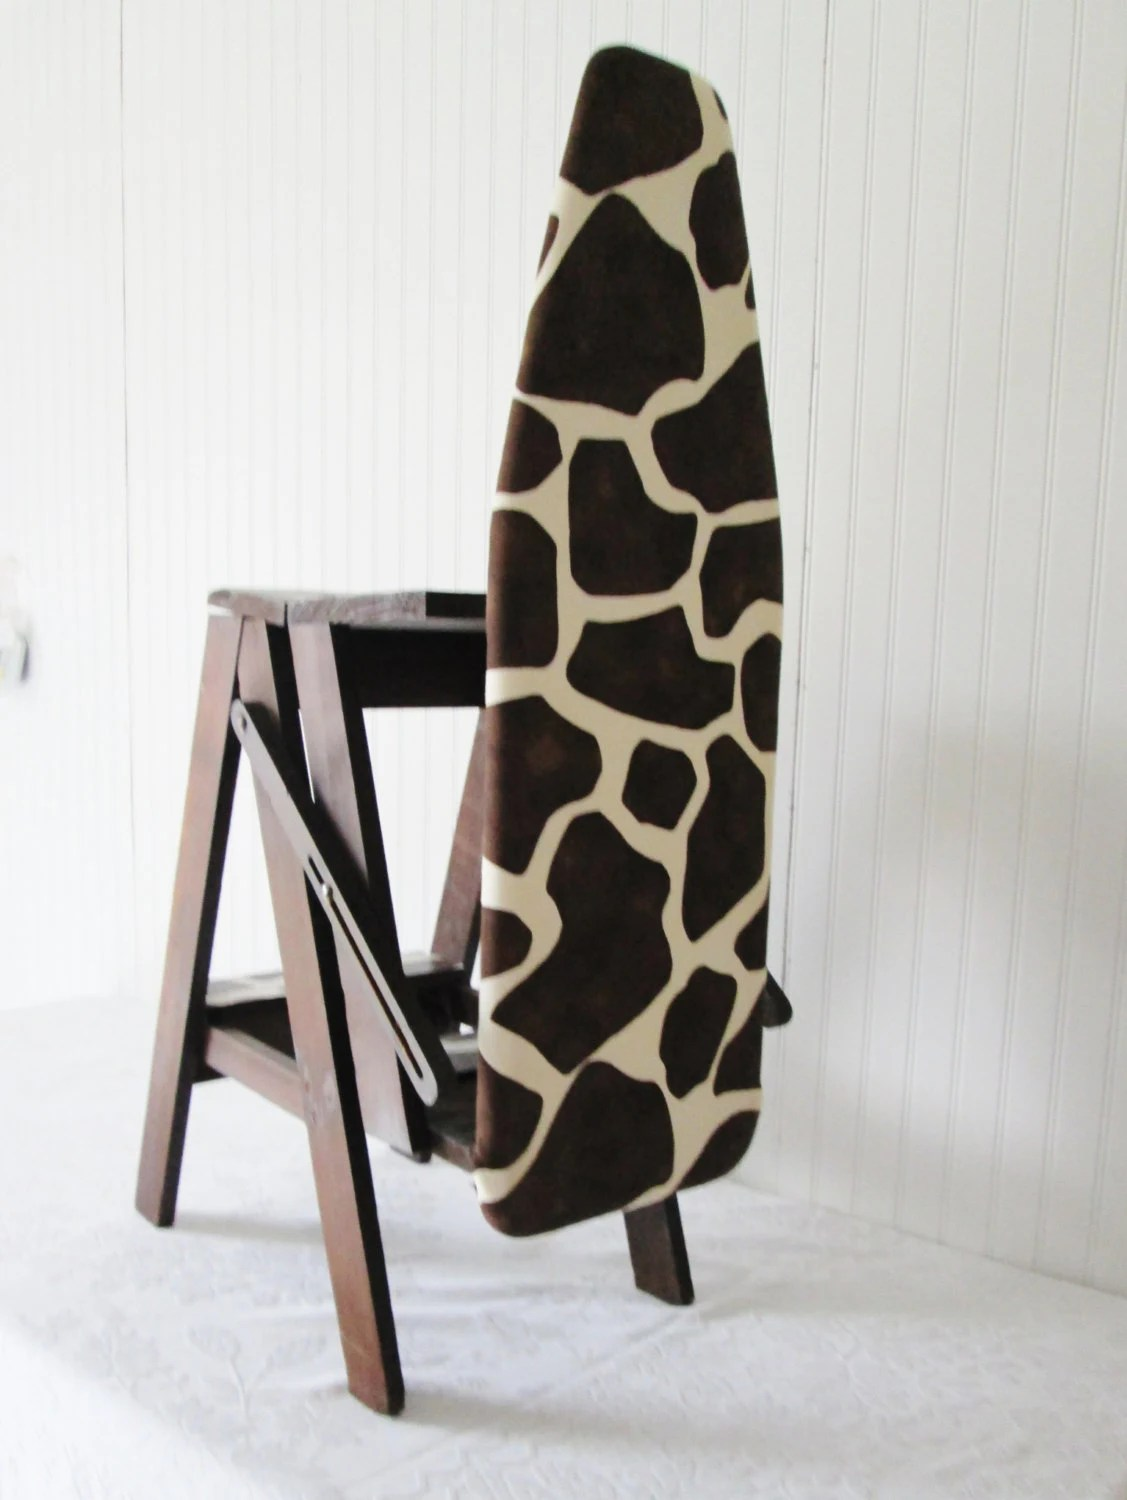 chair step stool ironing board child sized table and chairs set vintage multi purpose ladder